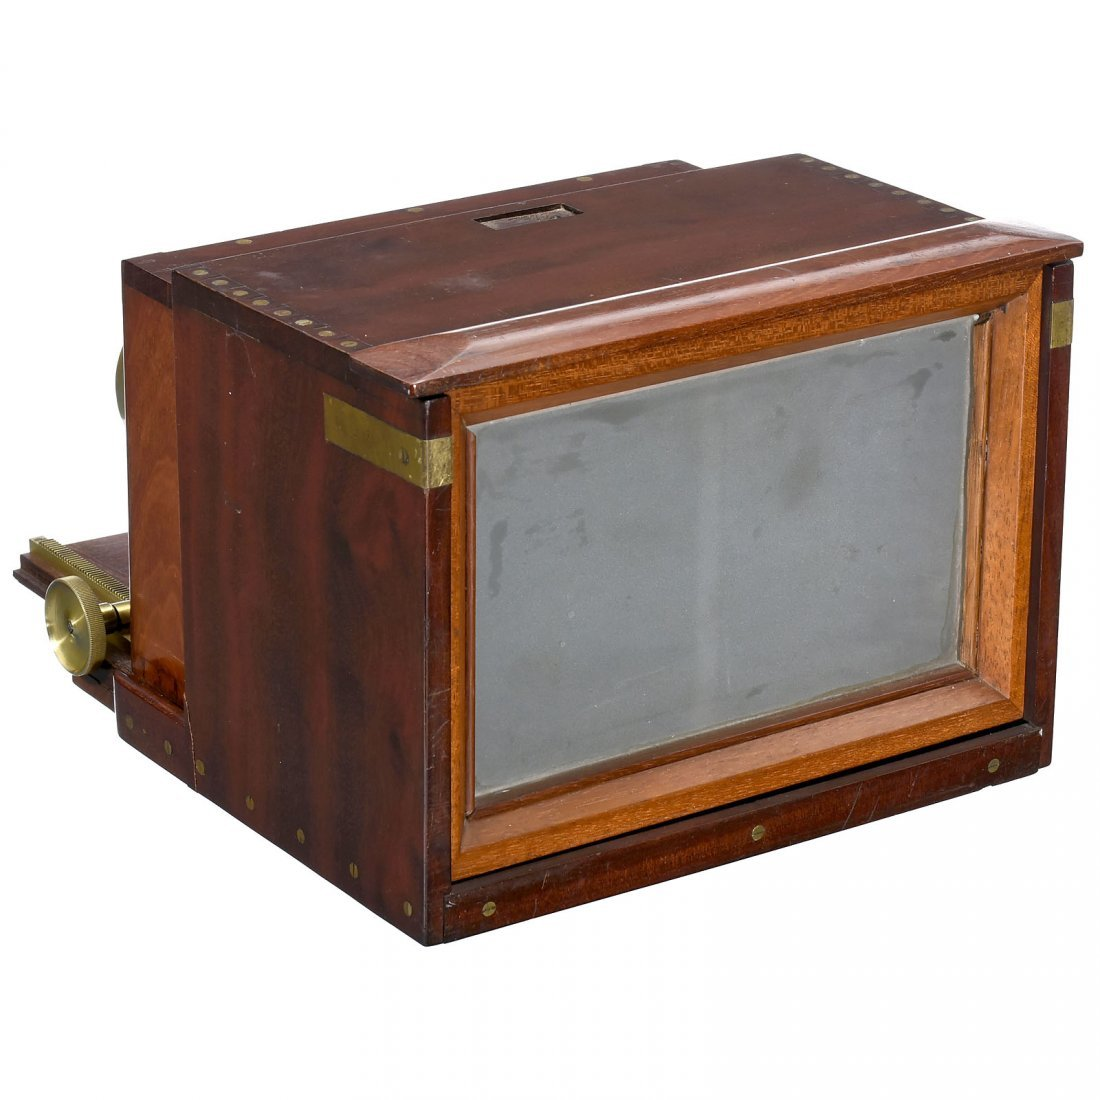 Stereo Wet-Plate Camera by Dallmeyer, c. 1860 - 3